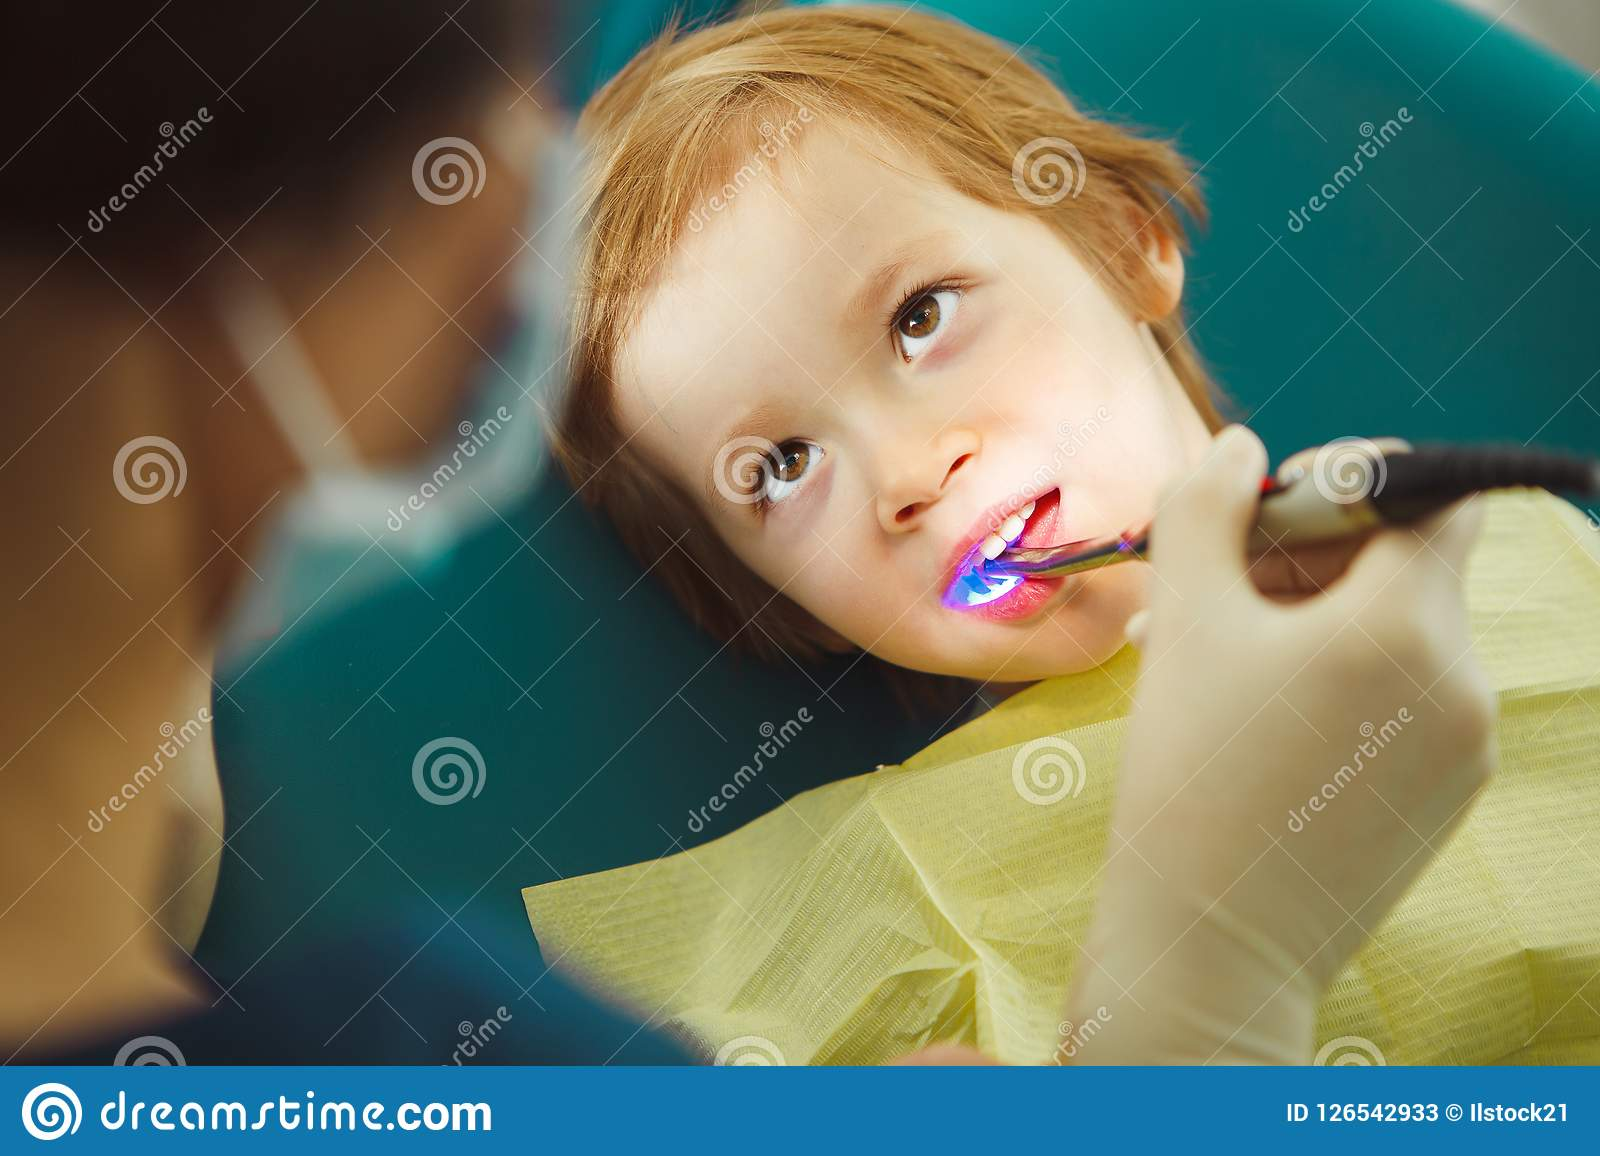 Photopolymer seal child, pediatric dentistry without pain